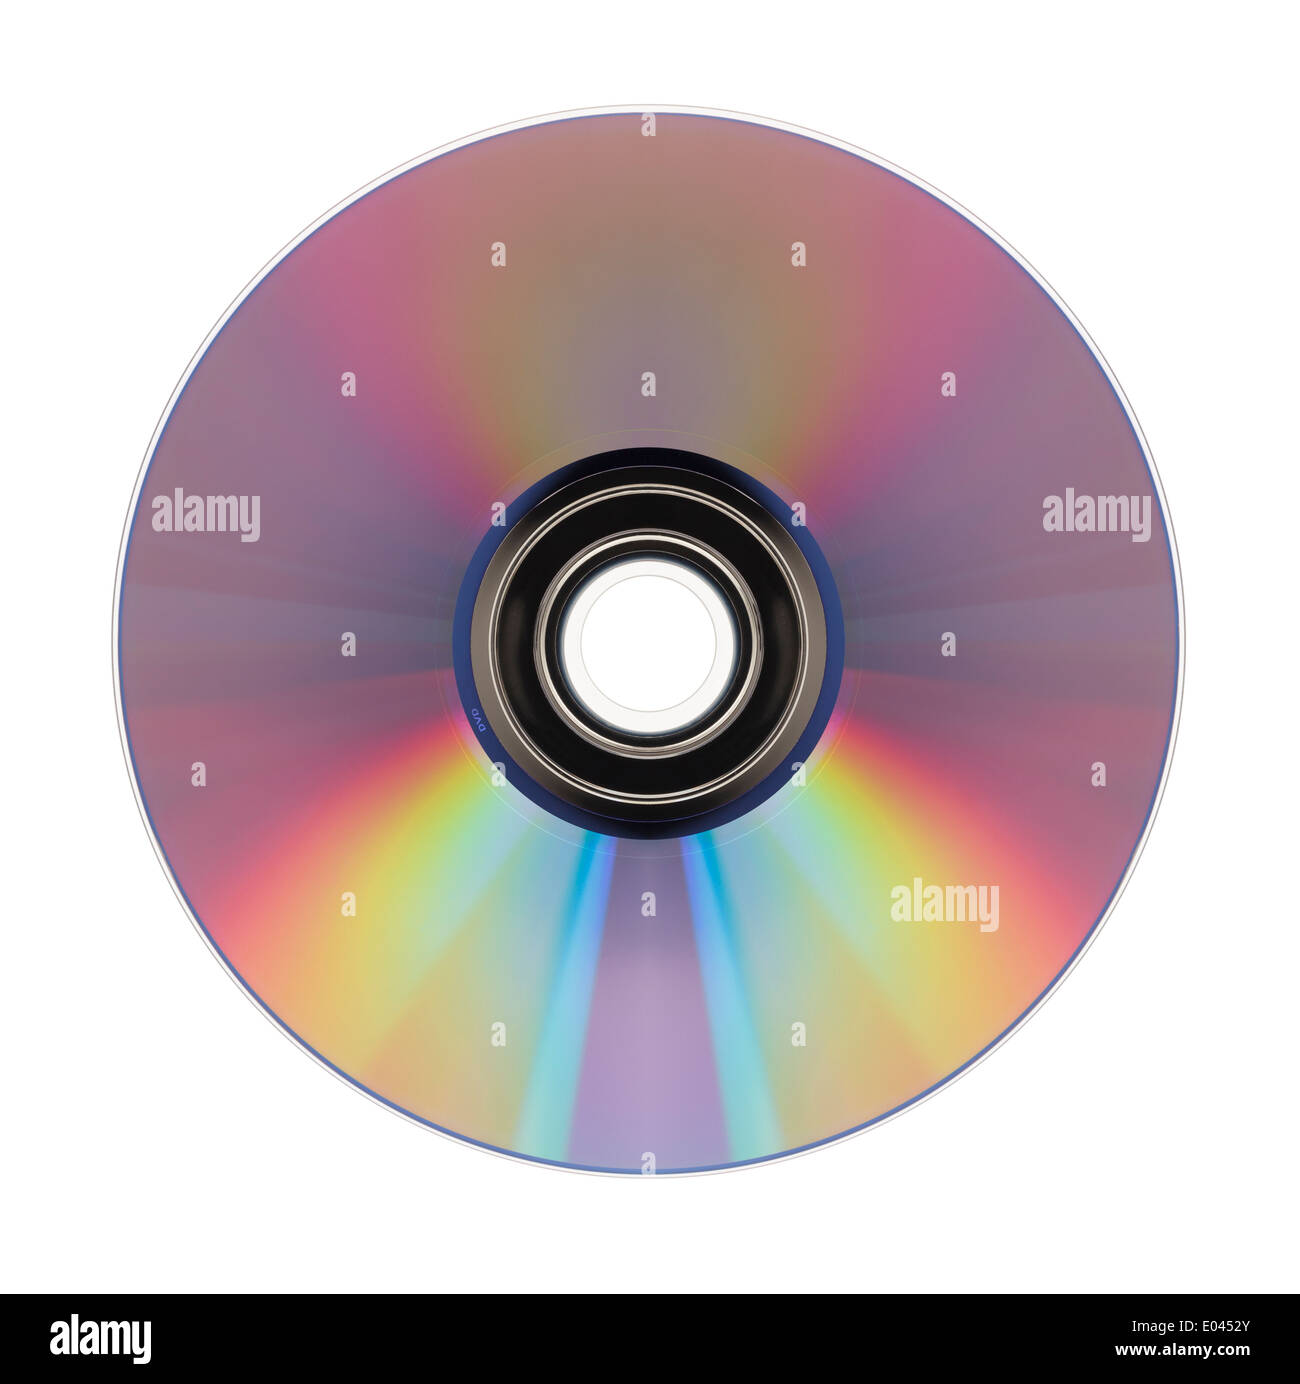 DVD top view isolated on a white background. - Stock Image